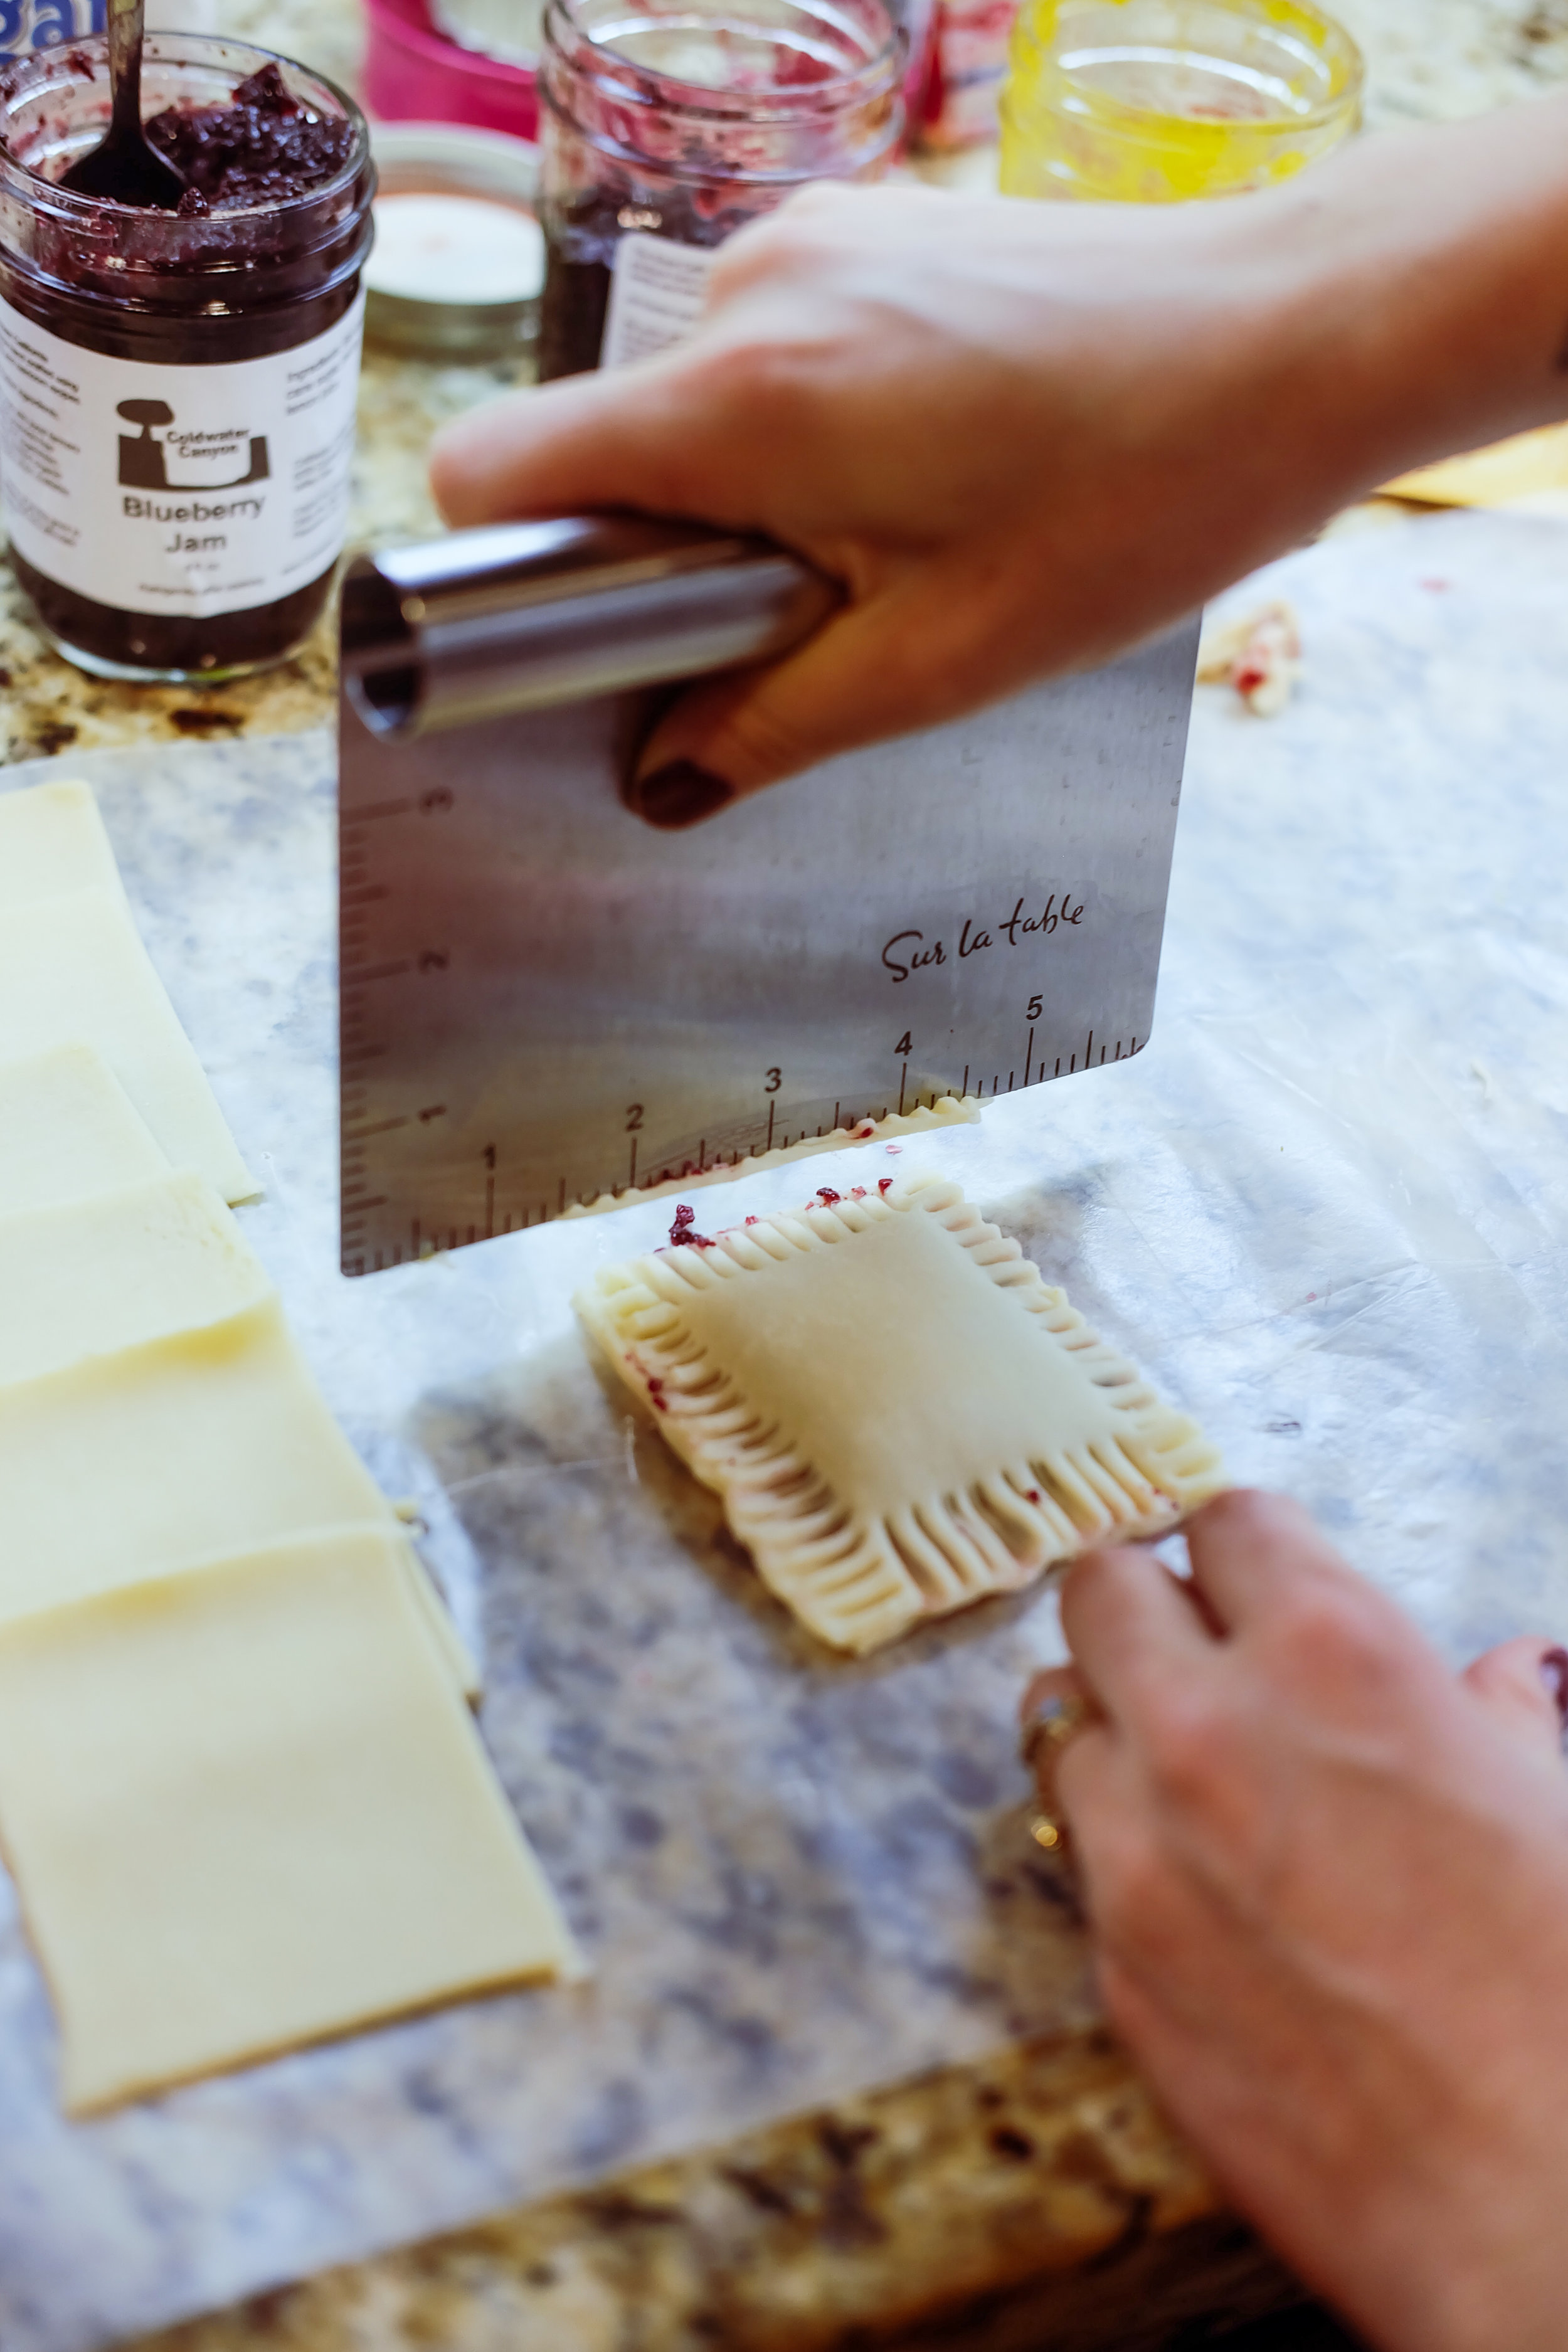 If you have a straight edge or scraper, use it to cut away the messy edges from the forked edges. This helps to seal up the sides too!